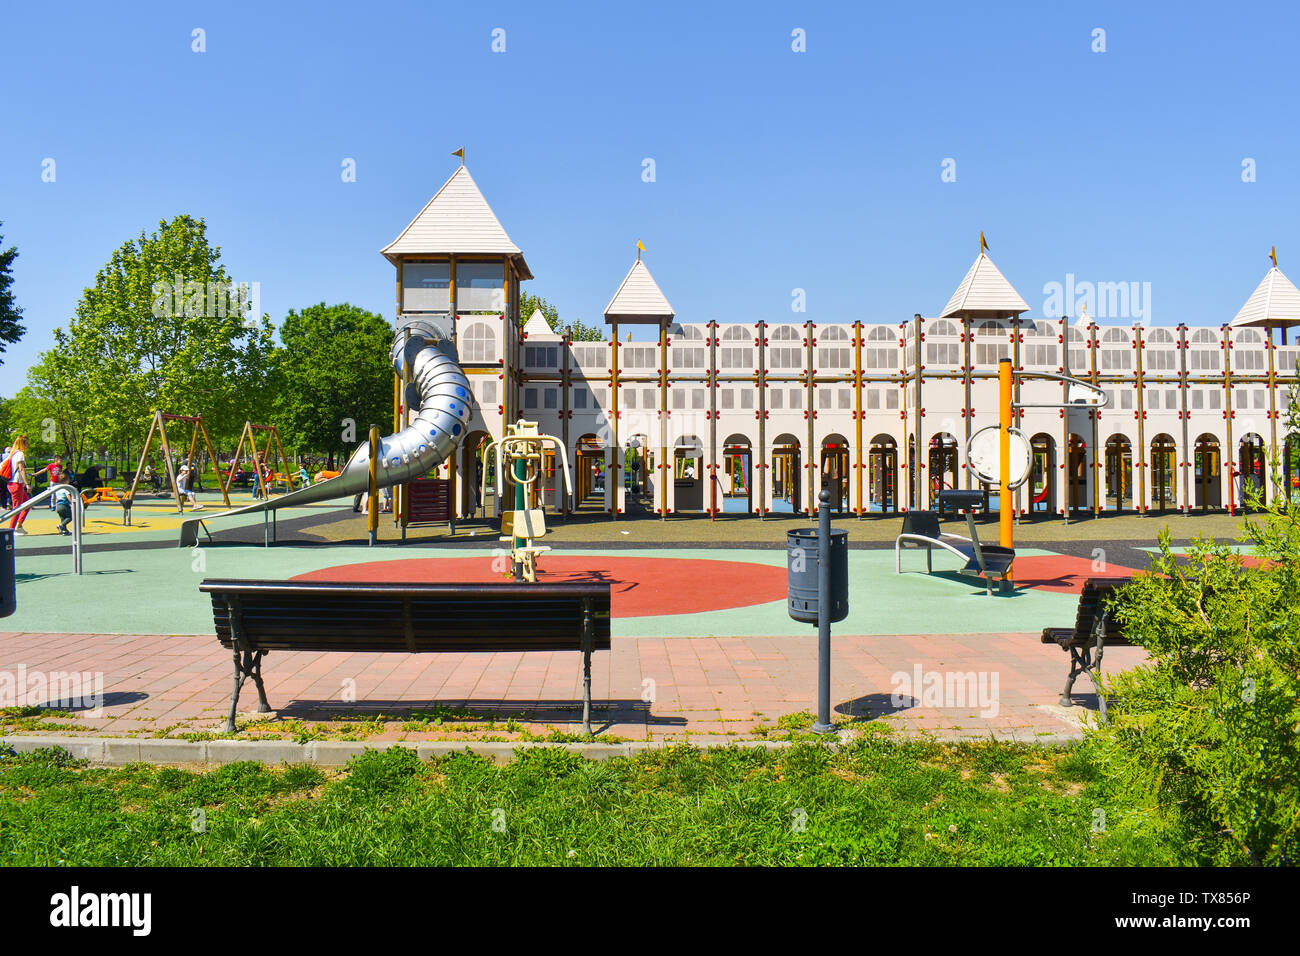 Castle playground for kids in the central park of the city. Beautiful palace playground idea for playing kids with their families. Colorful slides, sw - Stock Image